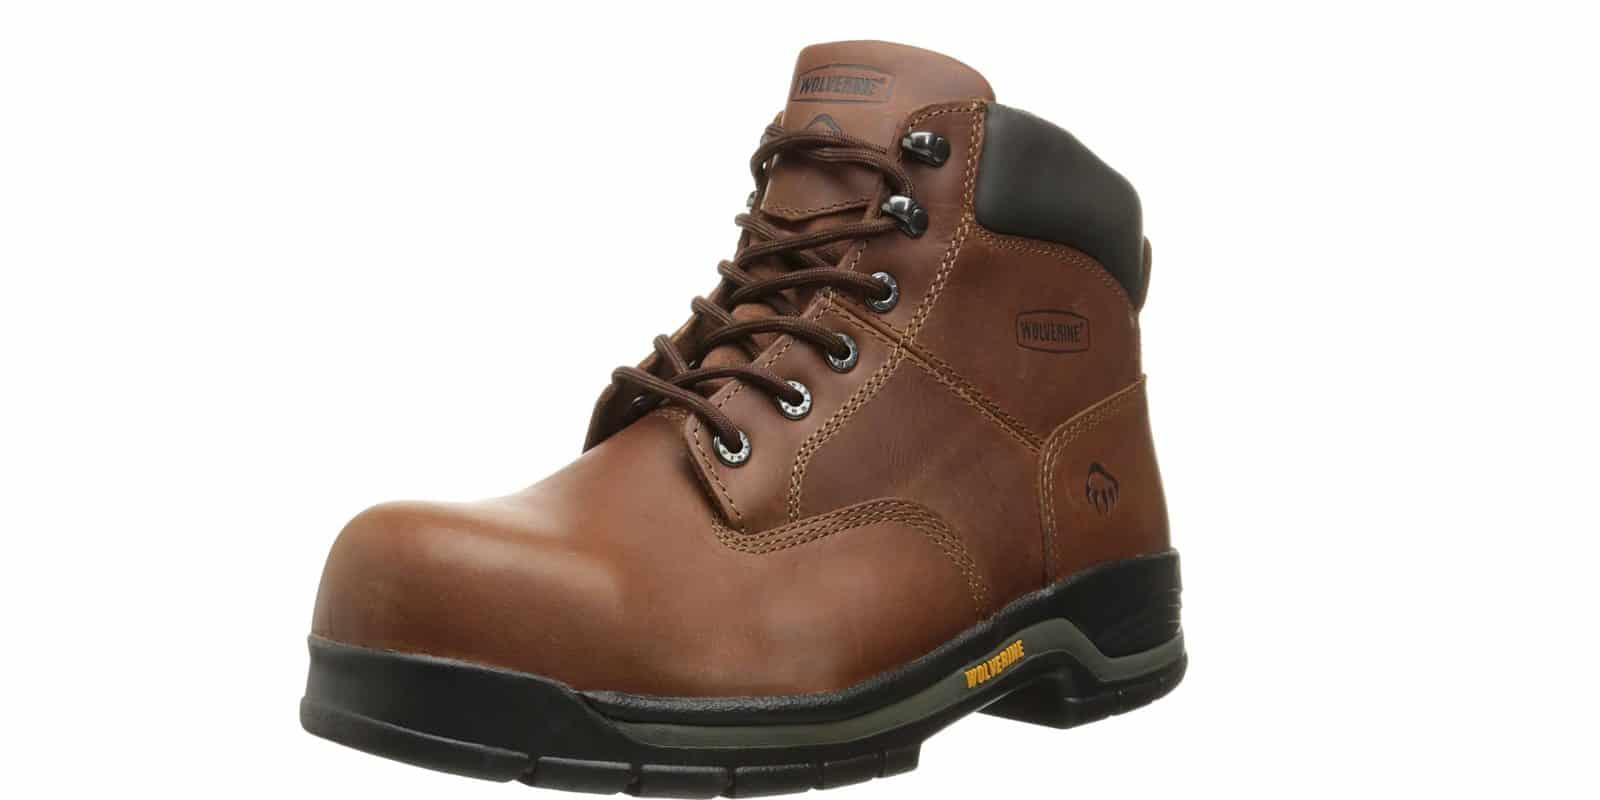 Men's Harrison Lace-Up Steel-Toe EH 6″ Work Boot: A Full Review